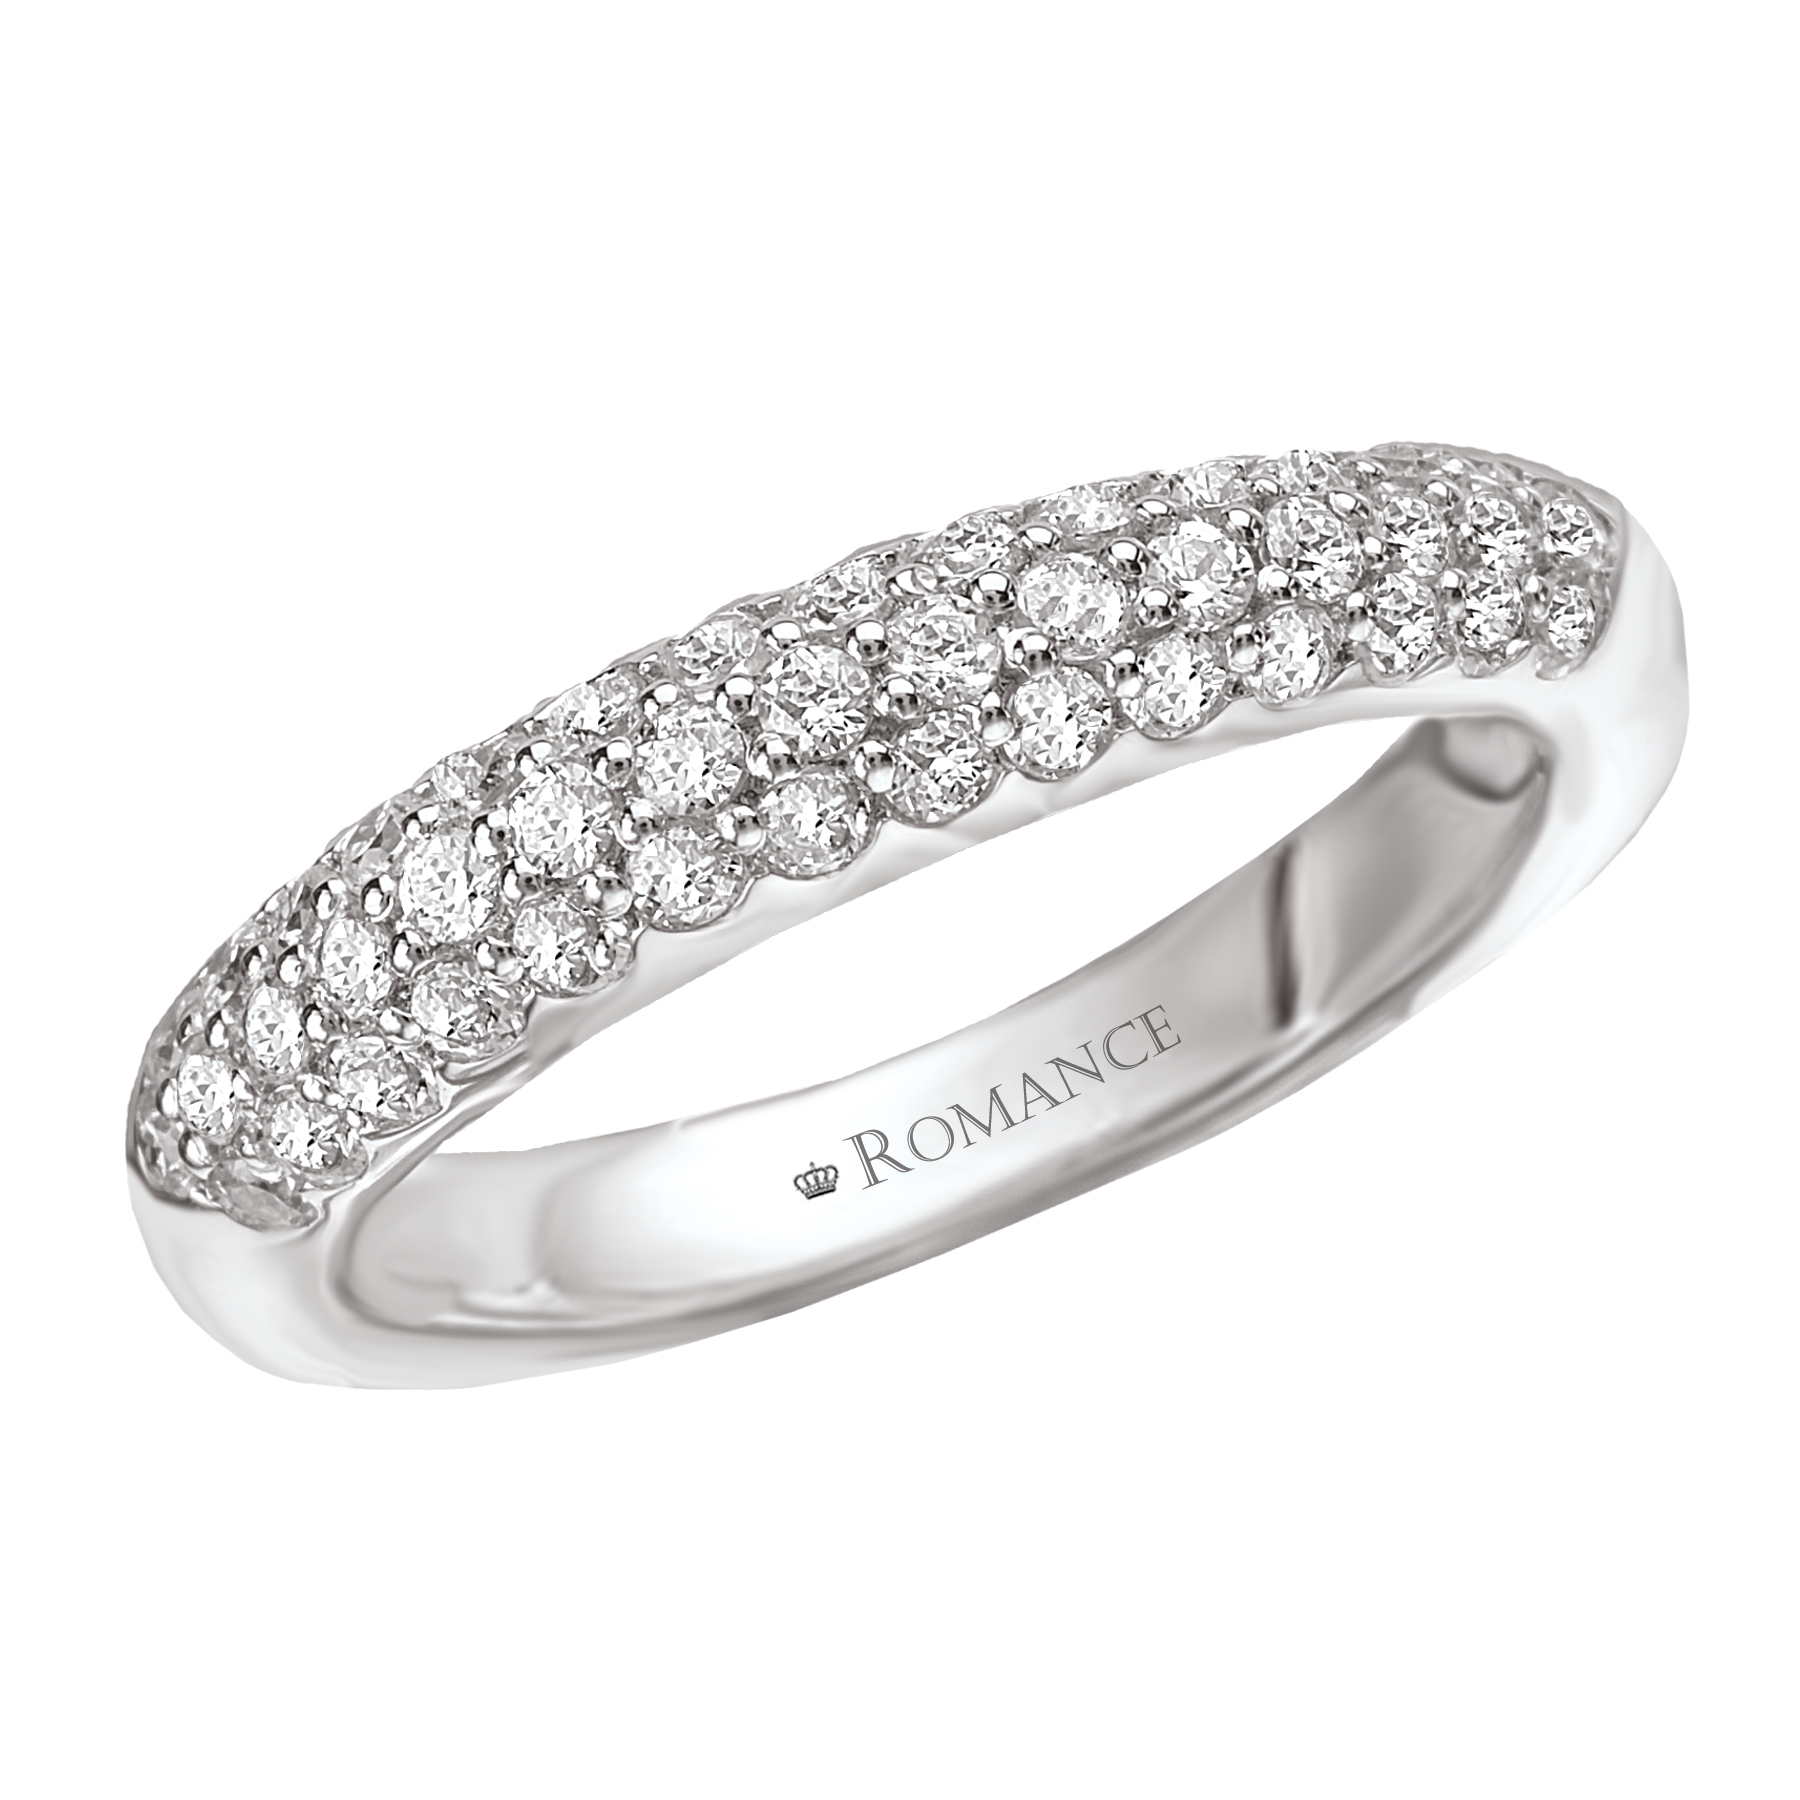 Romance Wedding Bands 117174-W product image